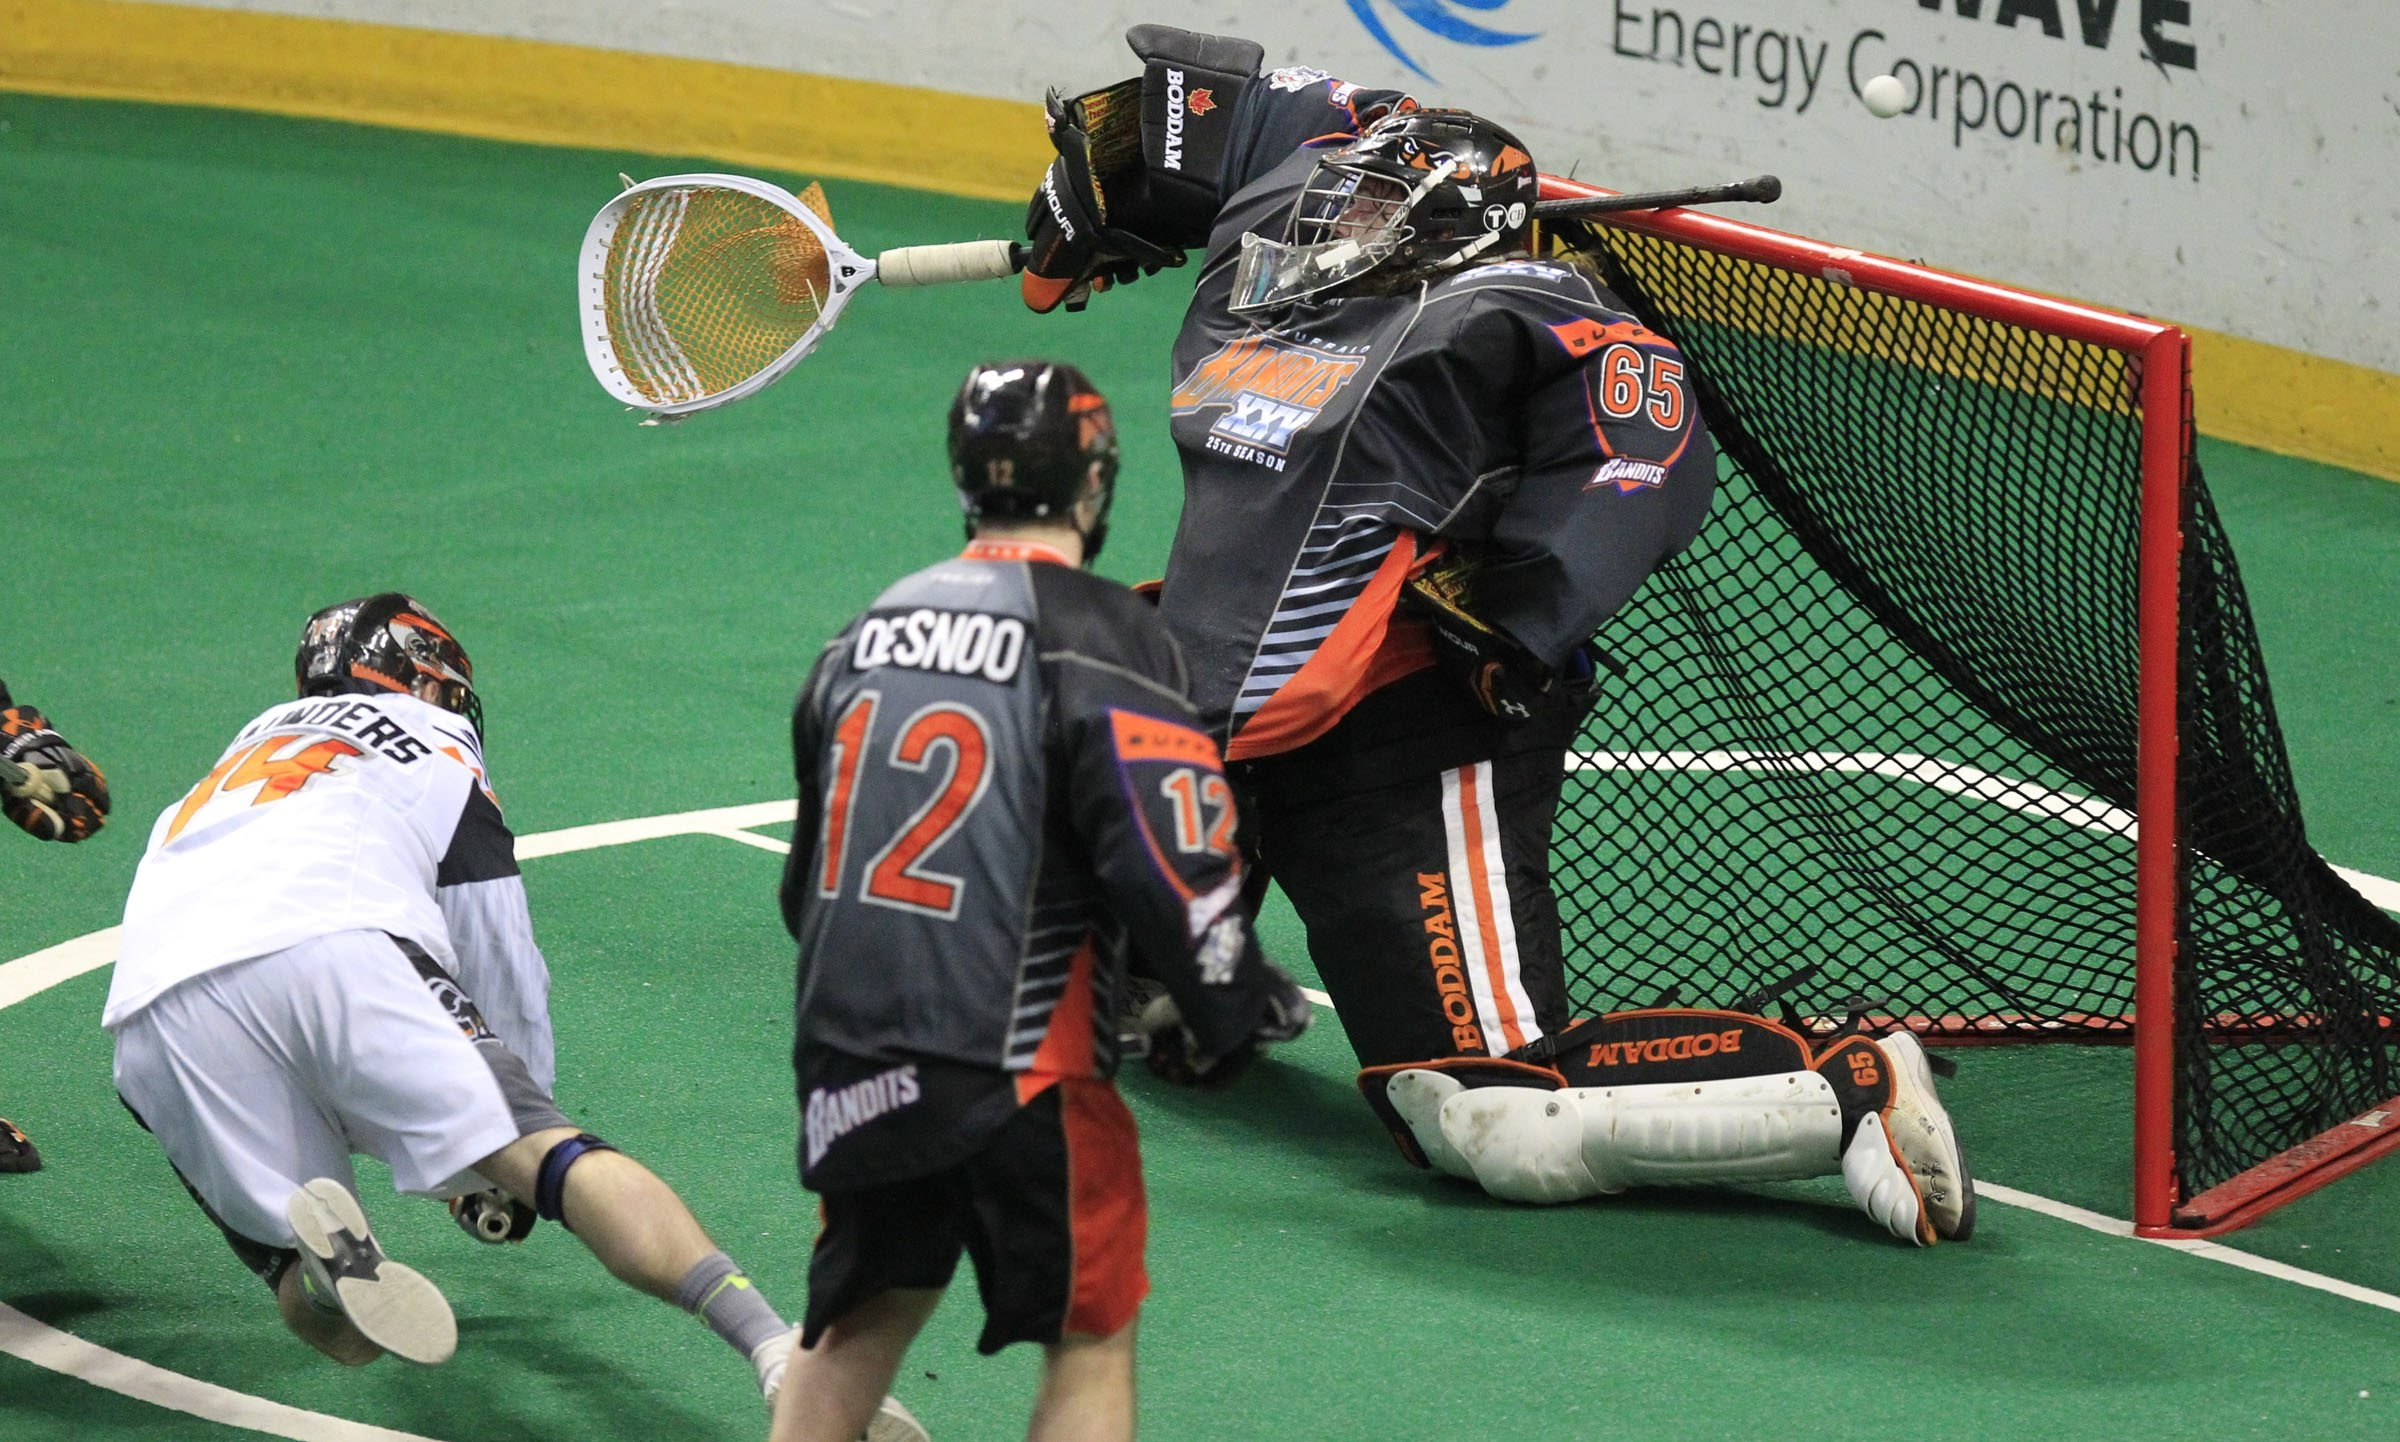 Bandits goaltender Anthony Cosmo makes a save on Pat Saunders of New England during first half action at the First Niagara Center on Saturday.